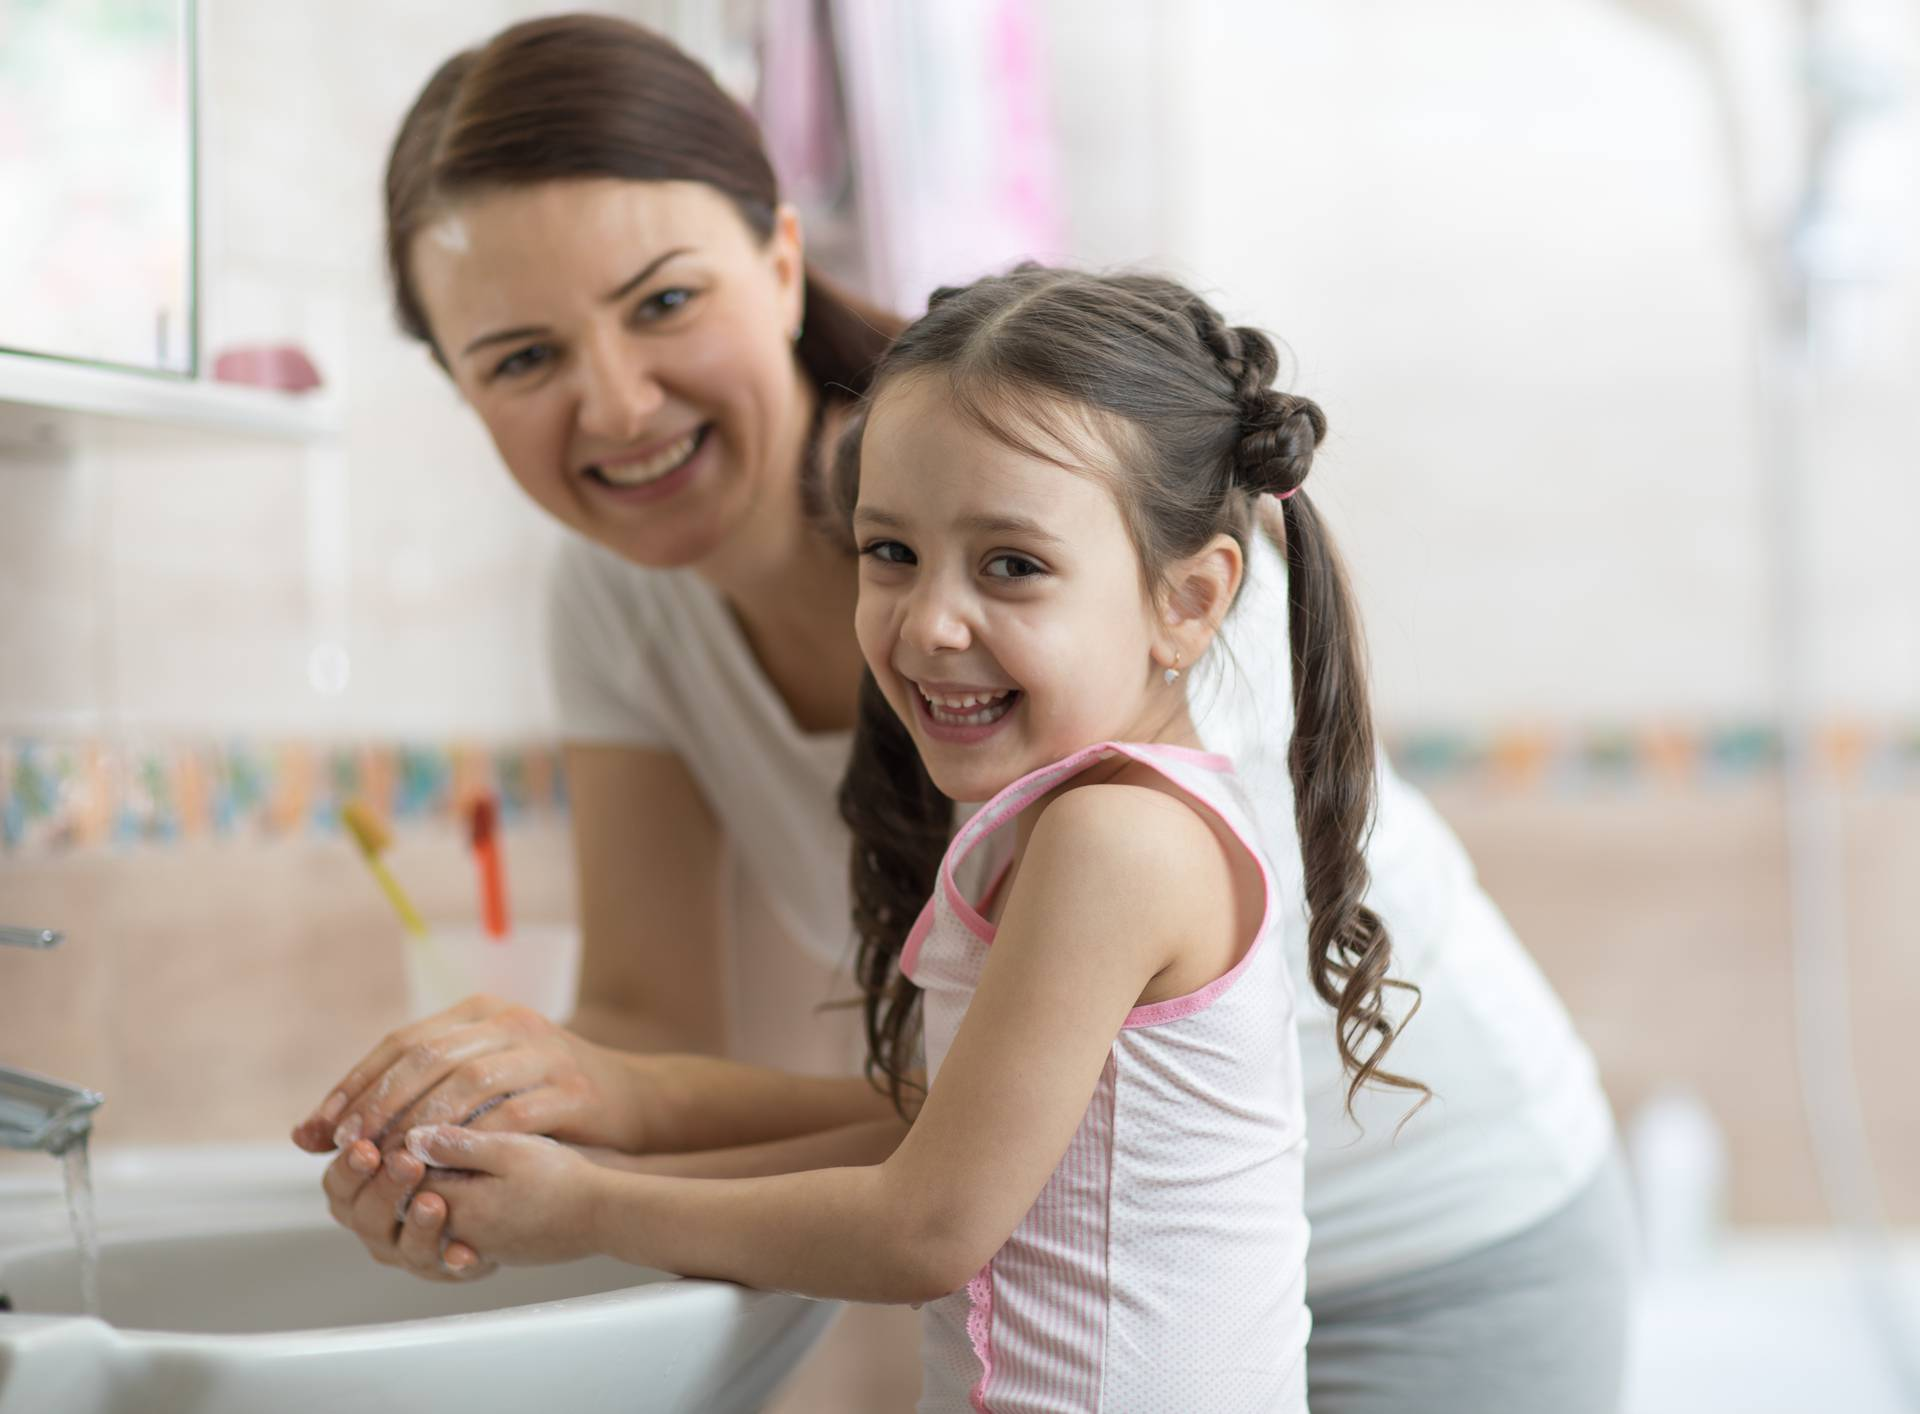 kid with mom washing her hands in bathroom